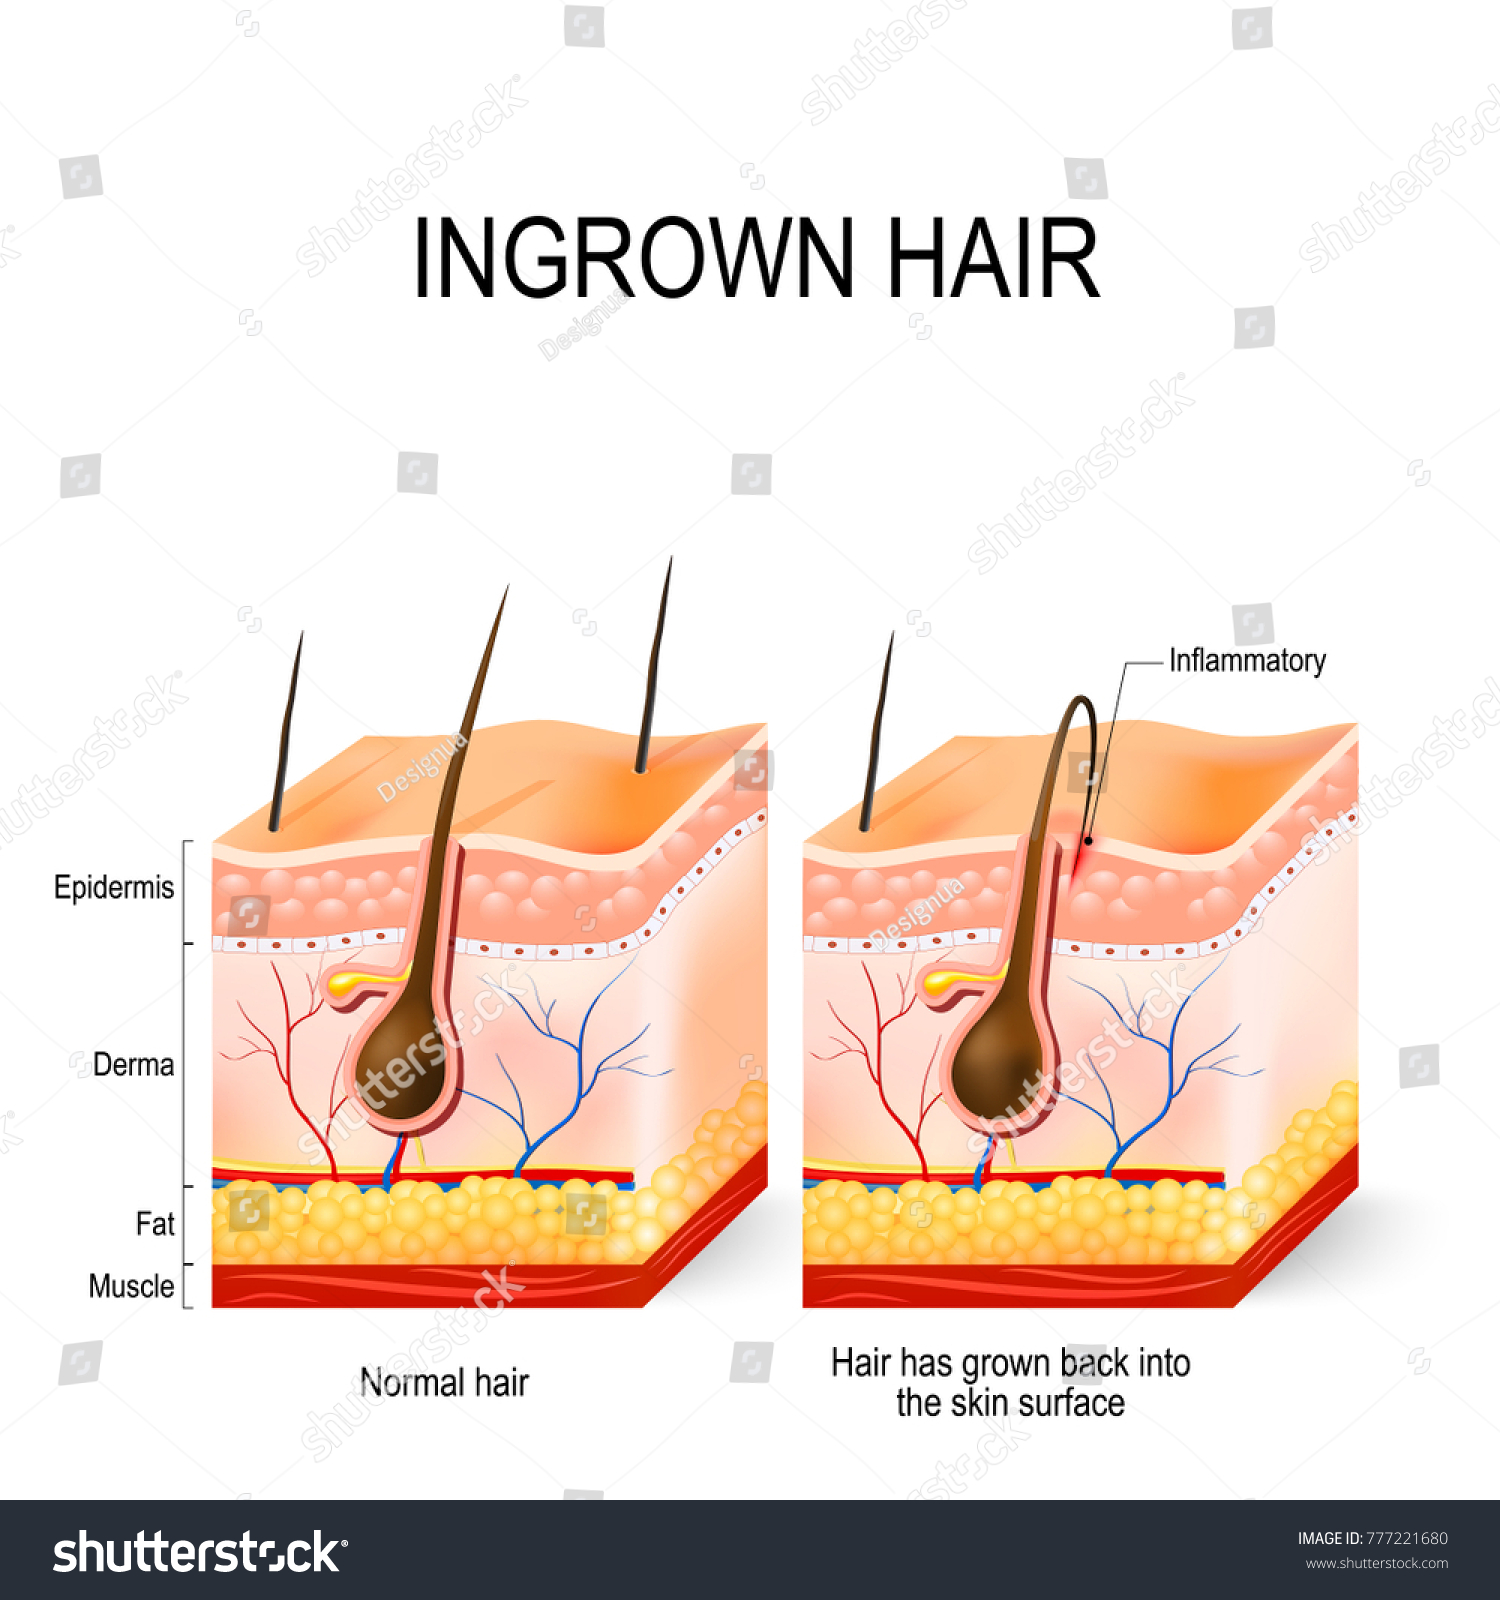 Ingrown Hair After Having Buried Hair Stock Illustration 777221680